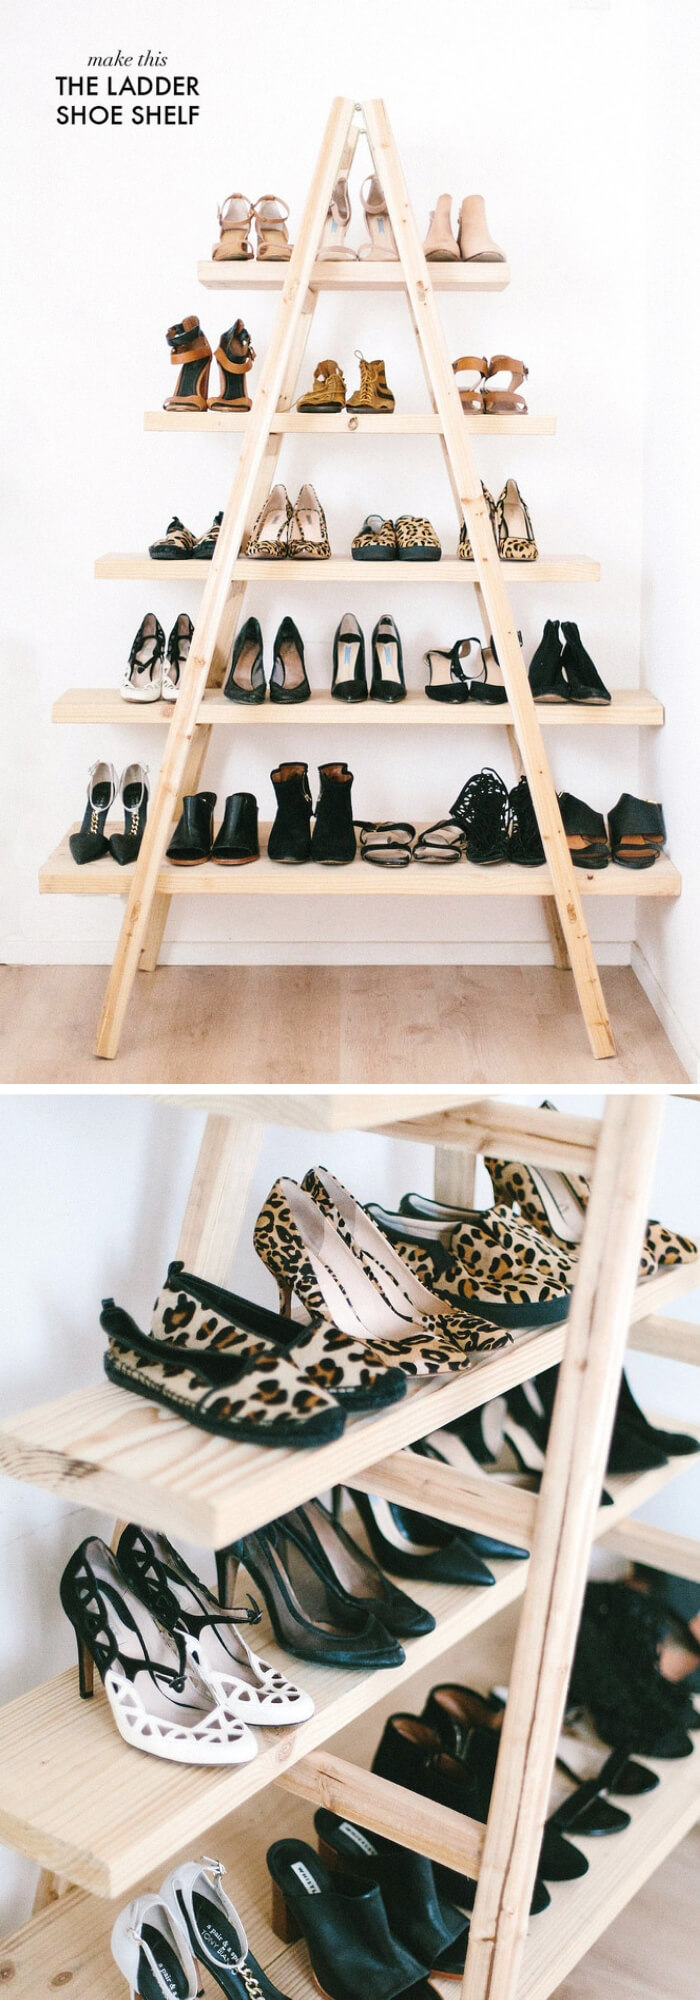 The Ladder Shoe Shelf (Pyramid Stairs) | Smart Shoe Storage Ideas & Designs For Any Zoom Size